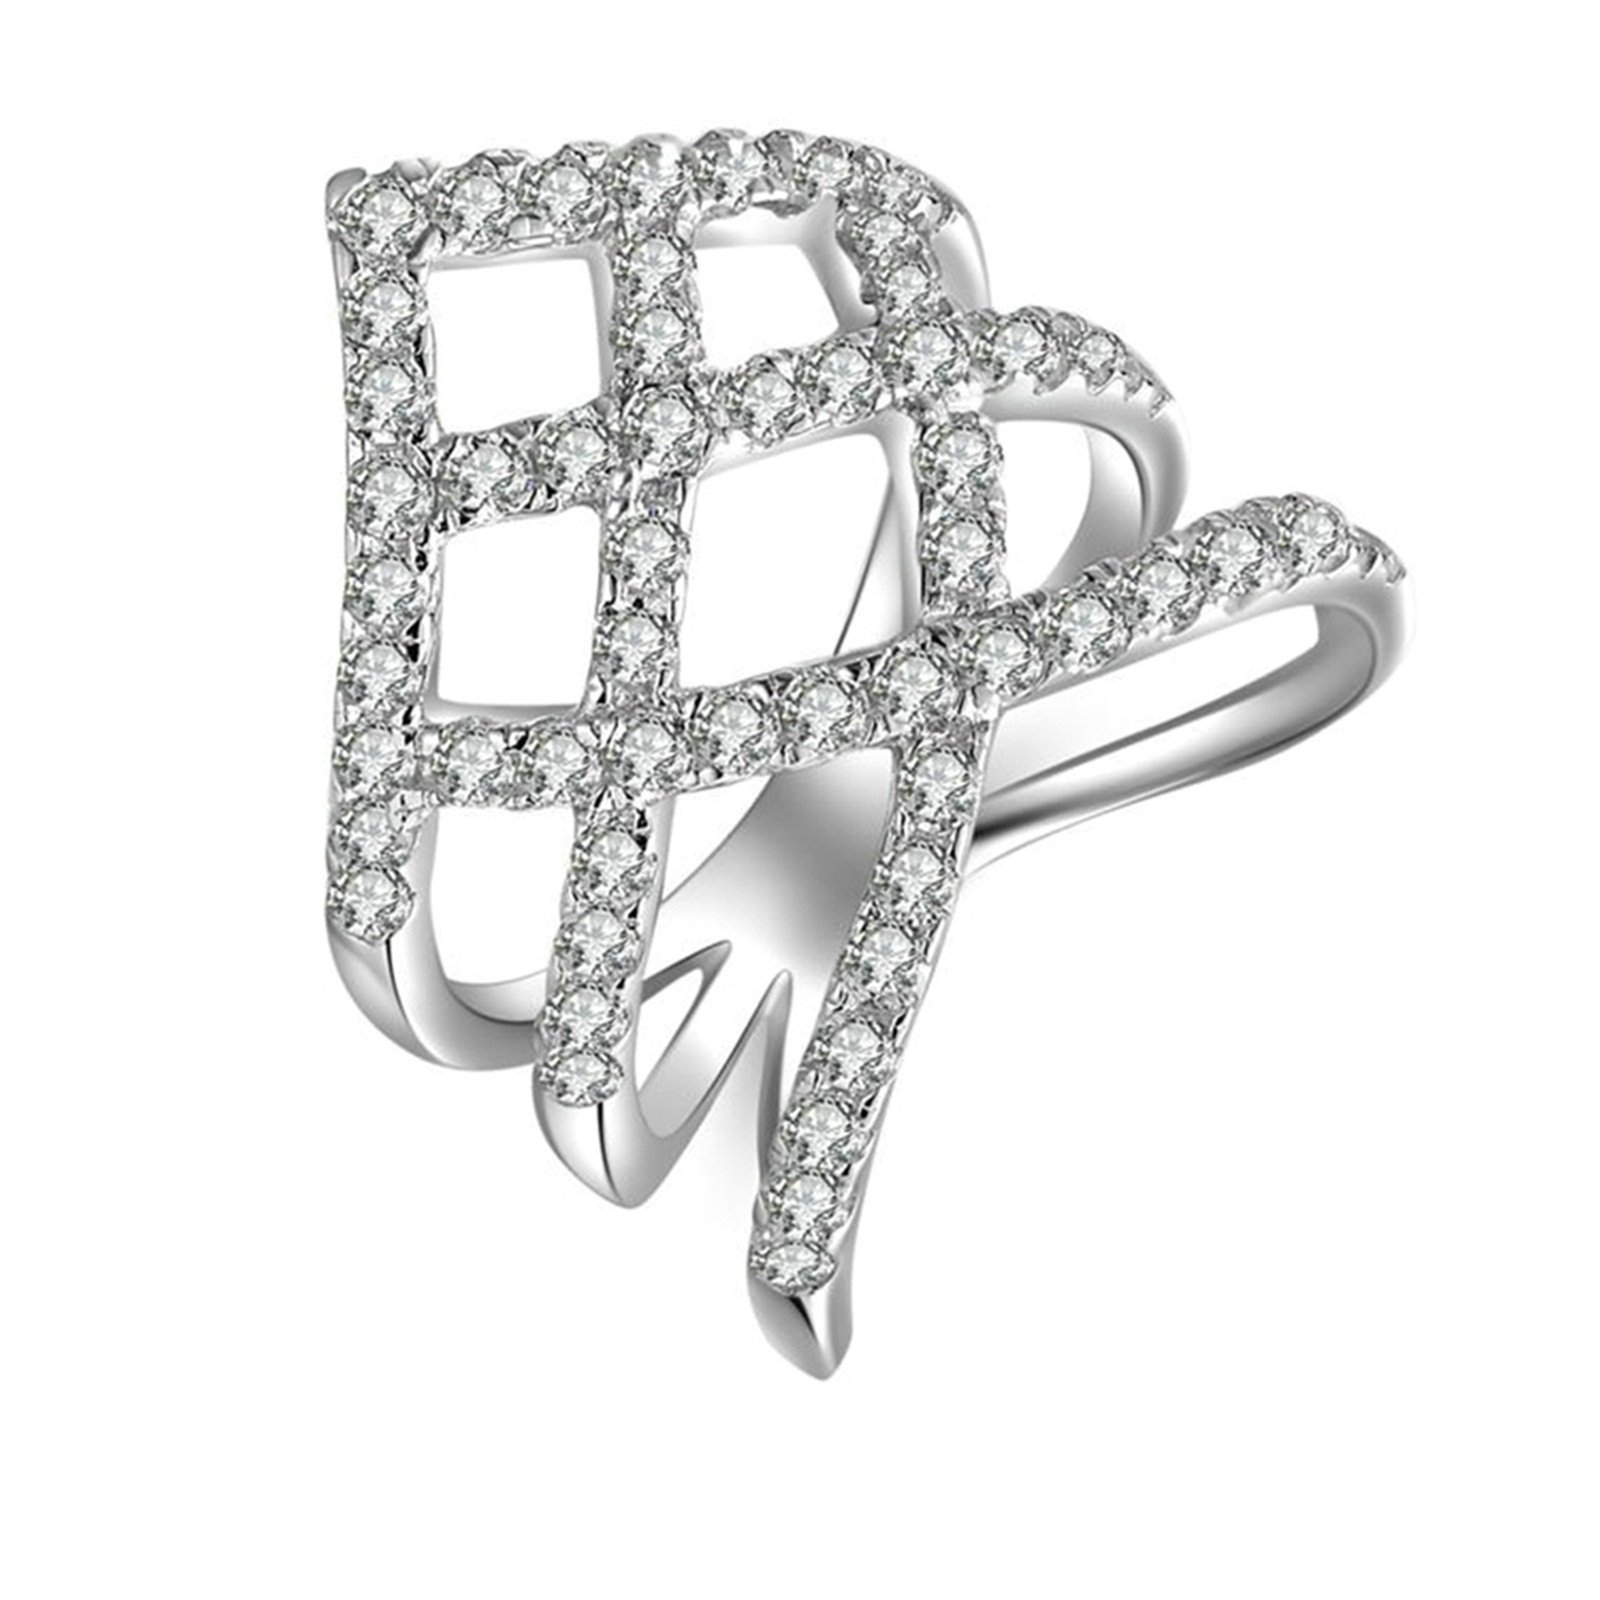 Beydodo Promise Ring Diamond Hollow Stackable Ring Round White Cubic Zirconia Size 6.5 Anniversary Gift